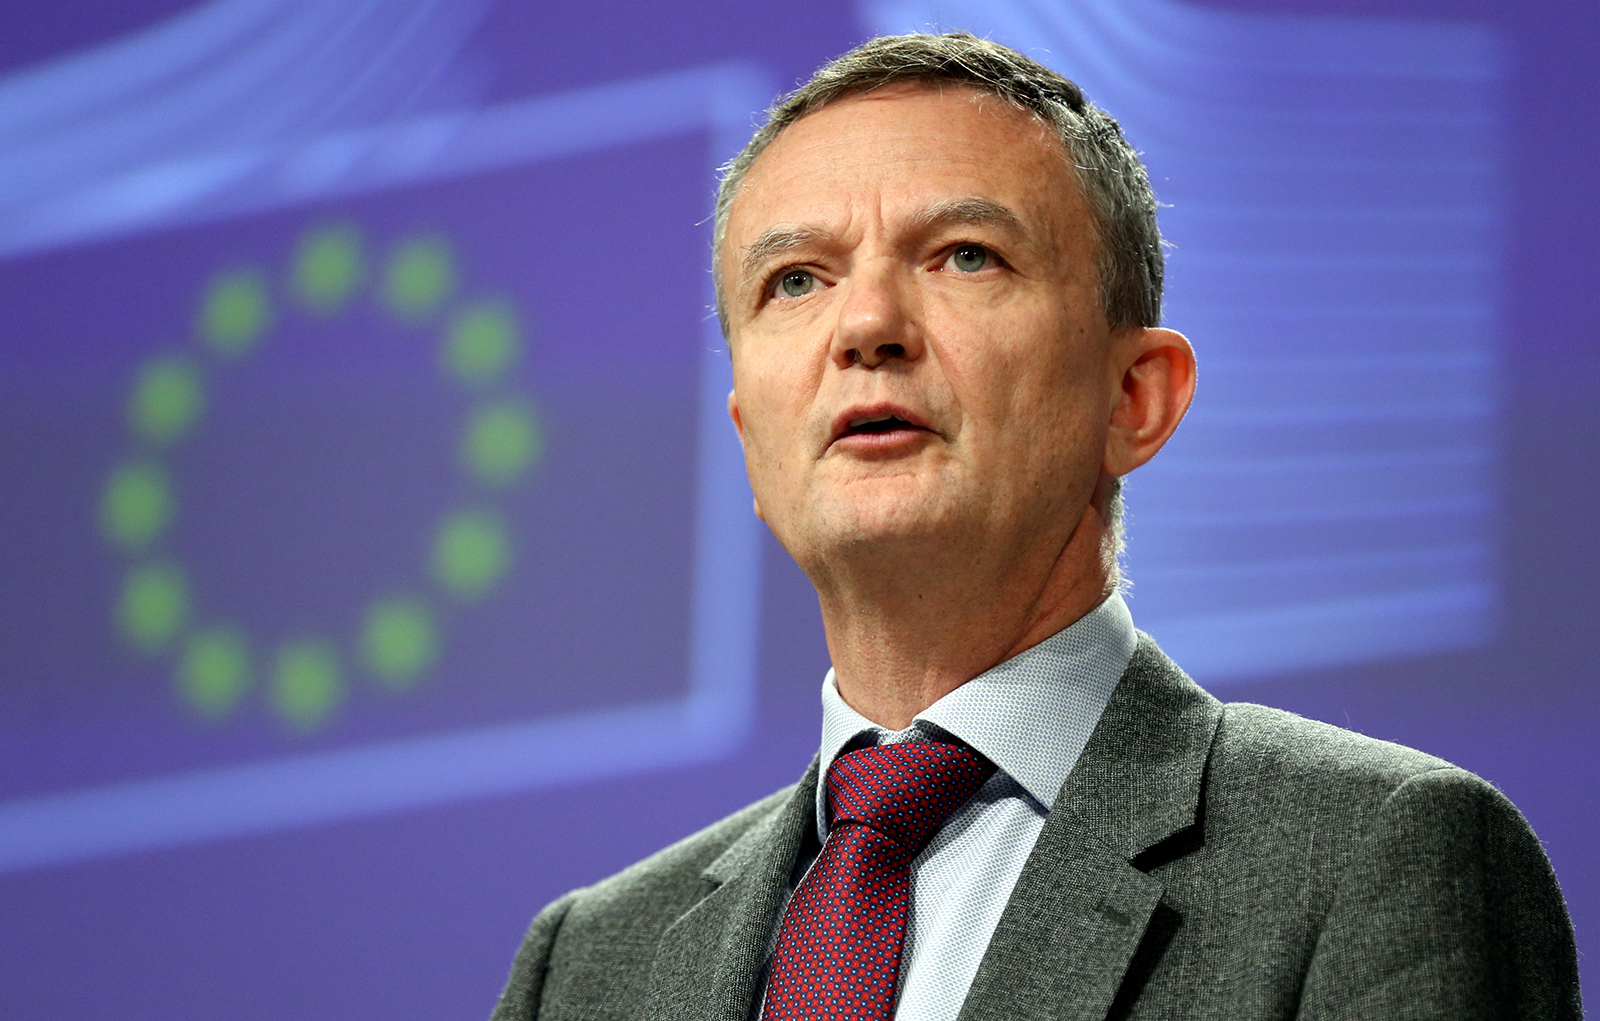 European Commission spokesman Eric Mamer speaks during a conference in Brussels, Belgium, on March 5, 2020.